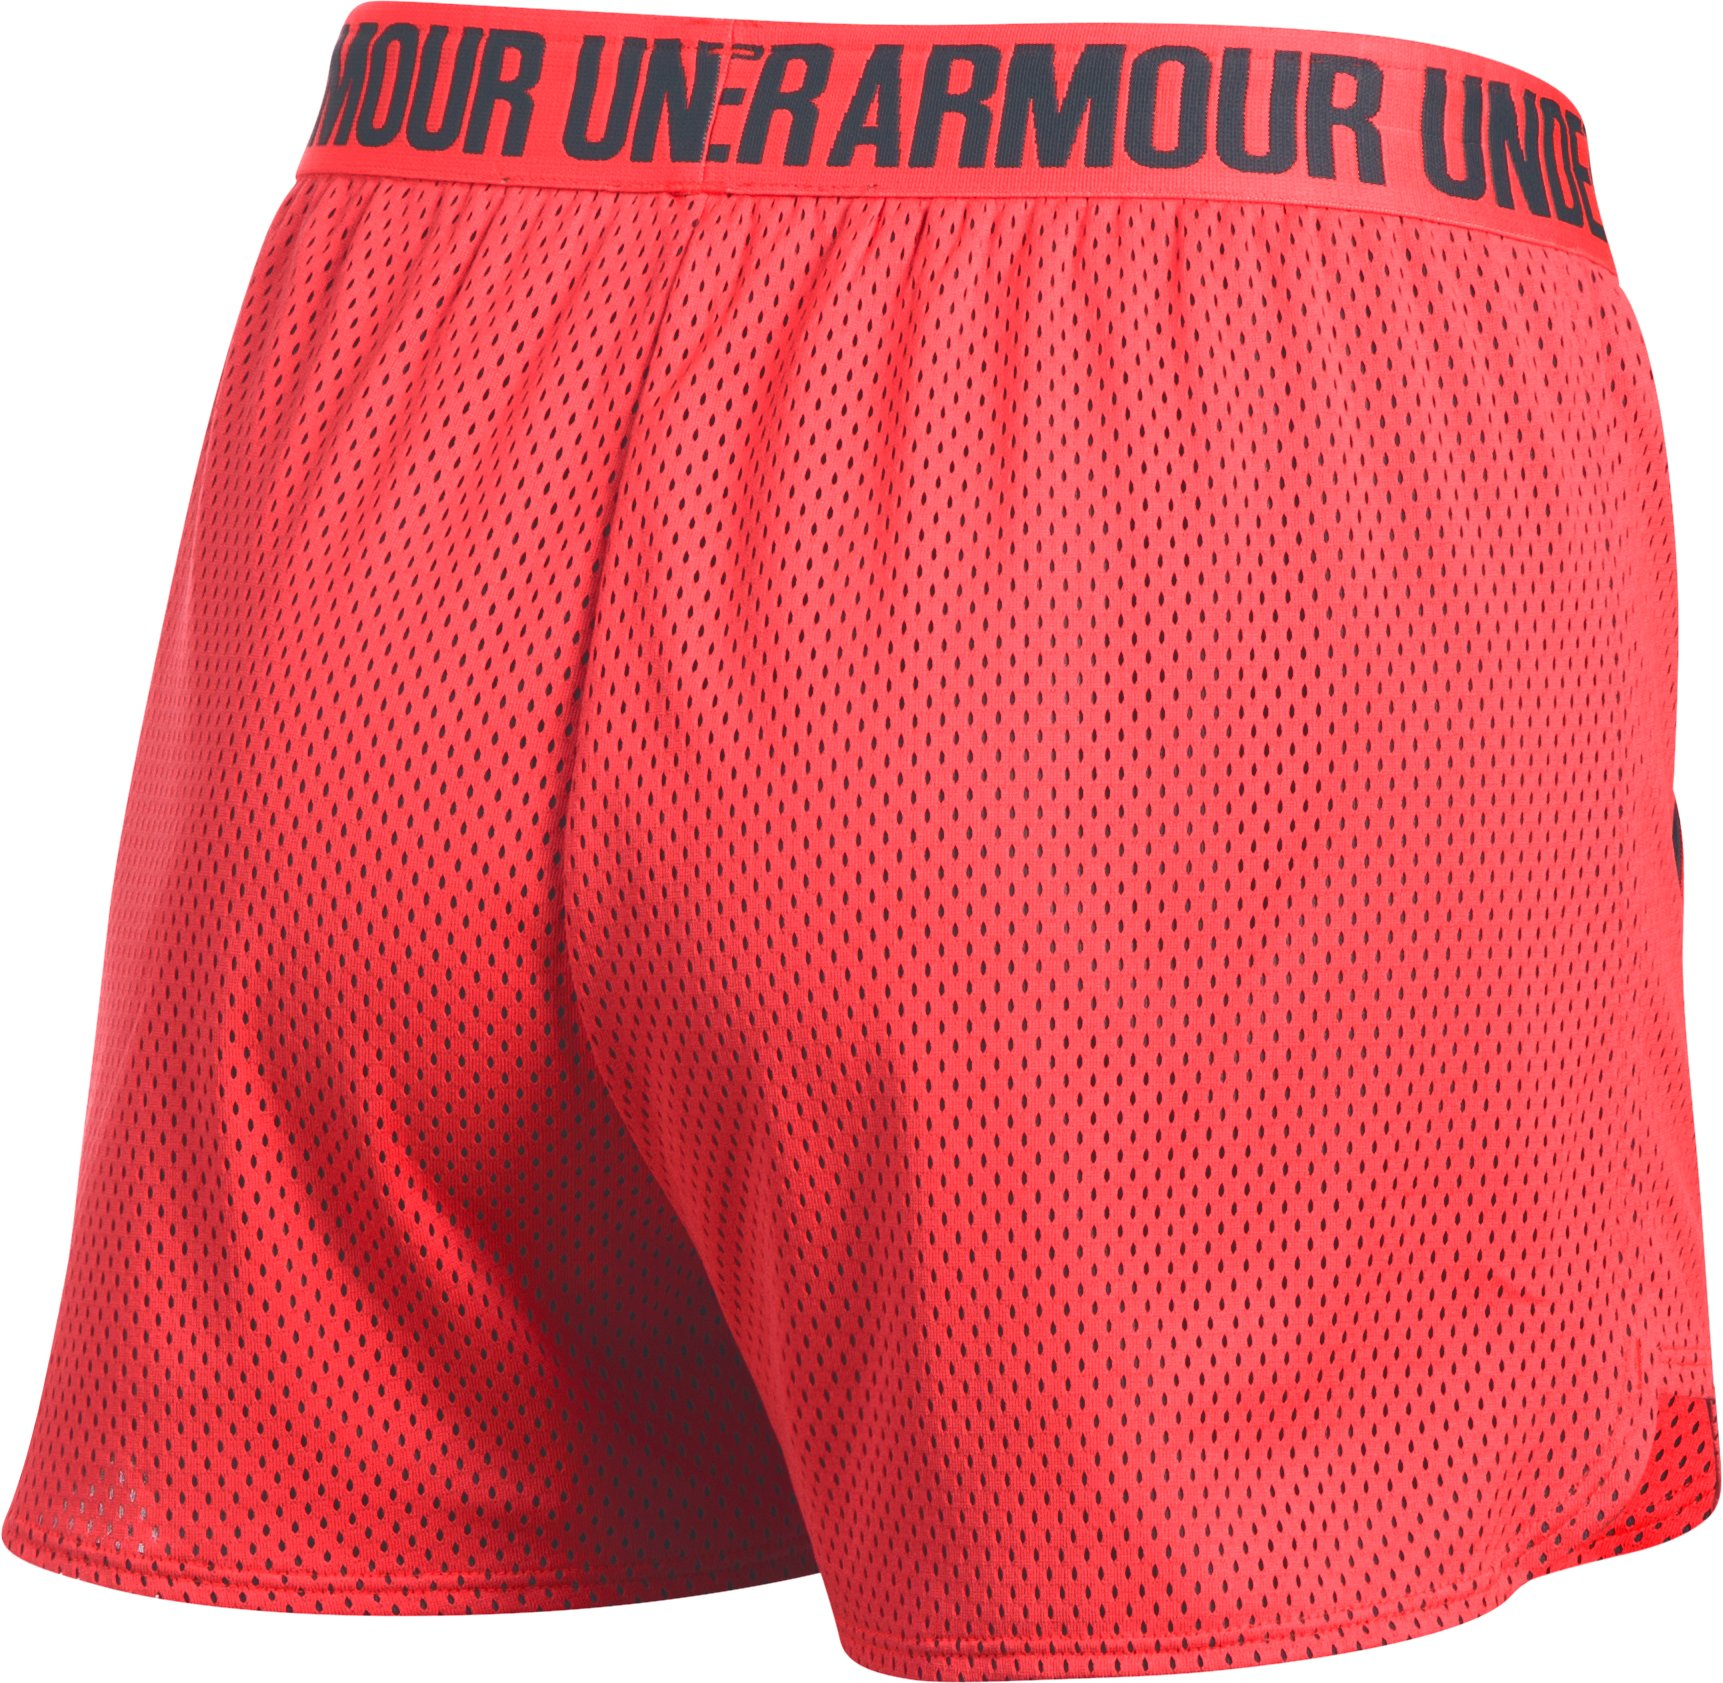 Women's UA Play Up Shorts 2.0 - Mesh, MARATHON RED, undefined